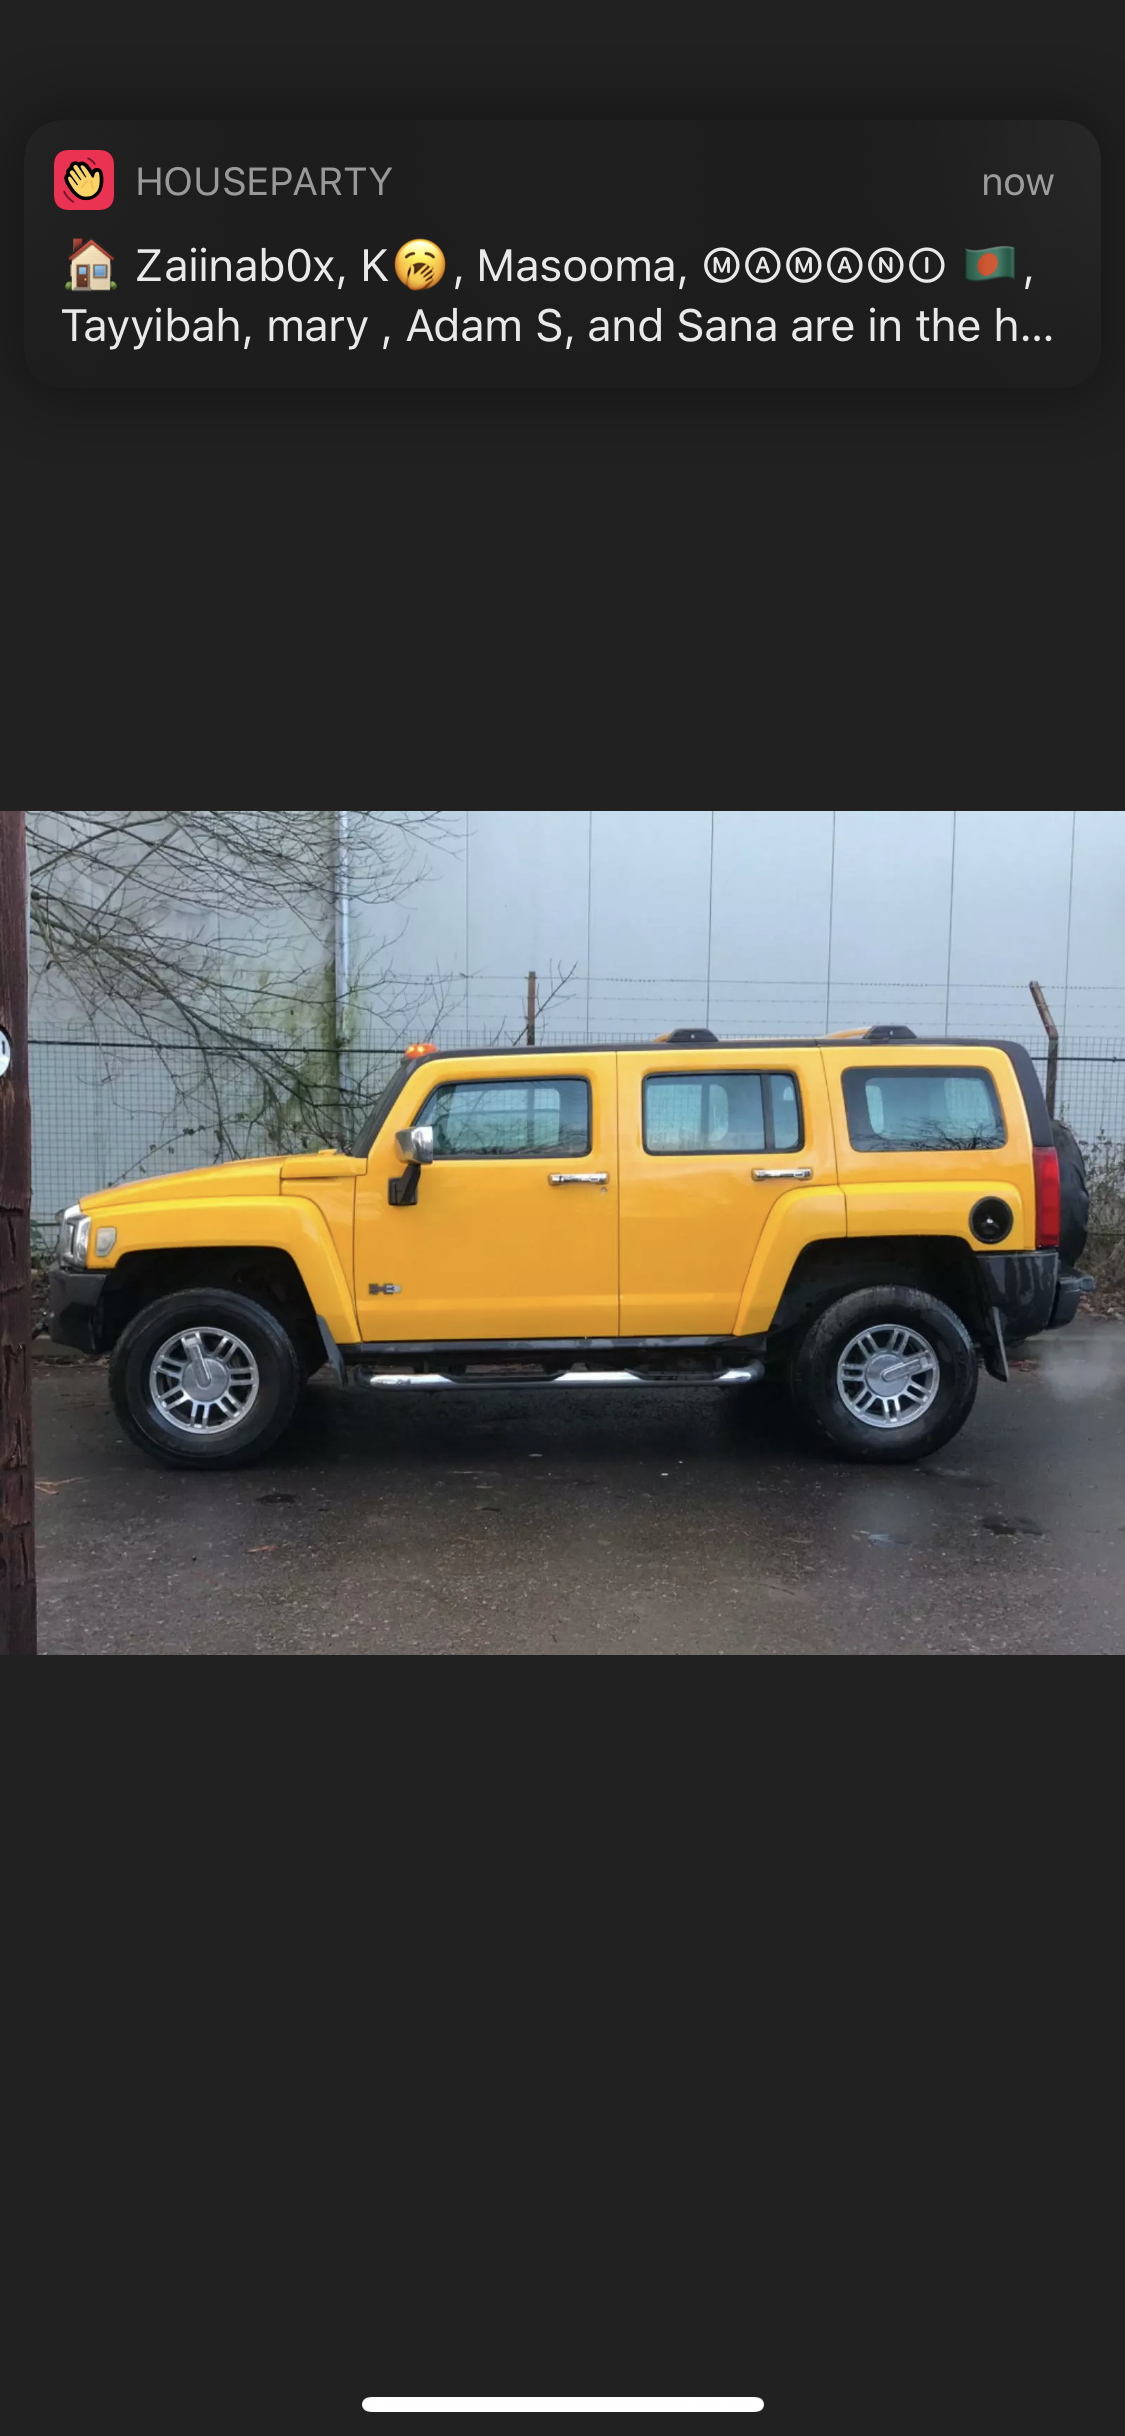 2007 HUMMER H3 3.5 LEFT HAND DRIVE YELLOW MODIFIED IMPORT For Sale (picture 2 of 6)